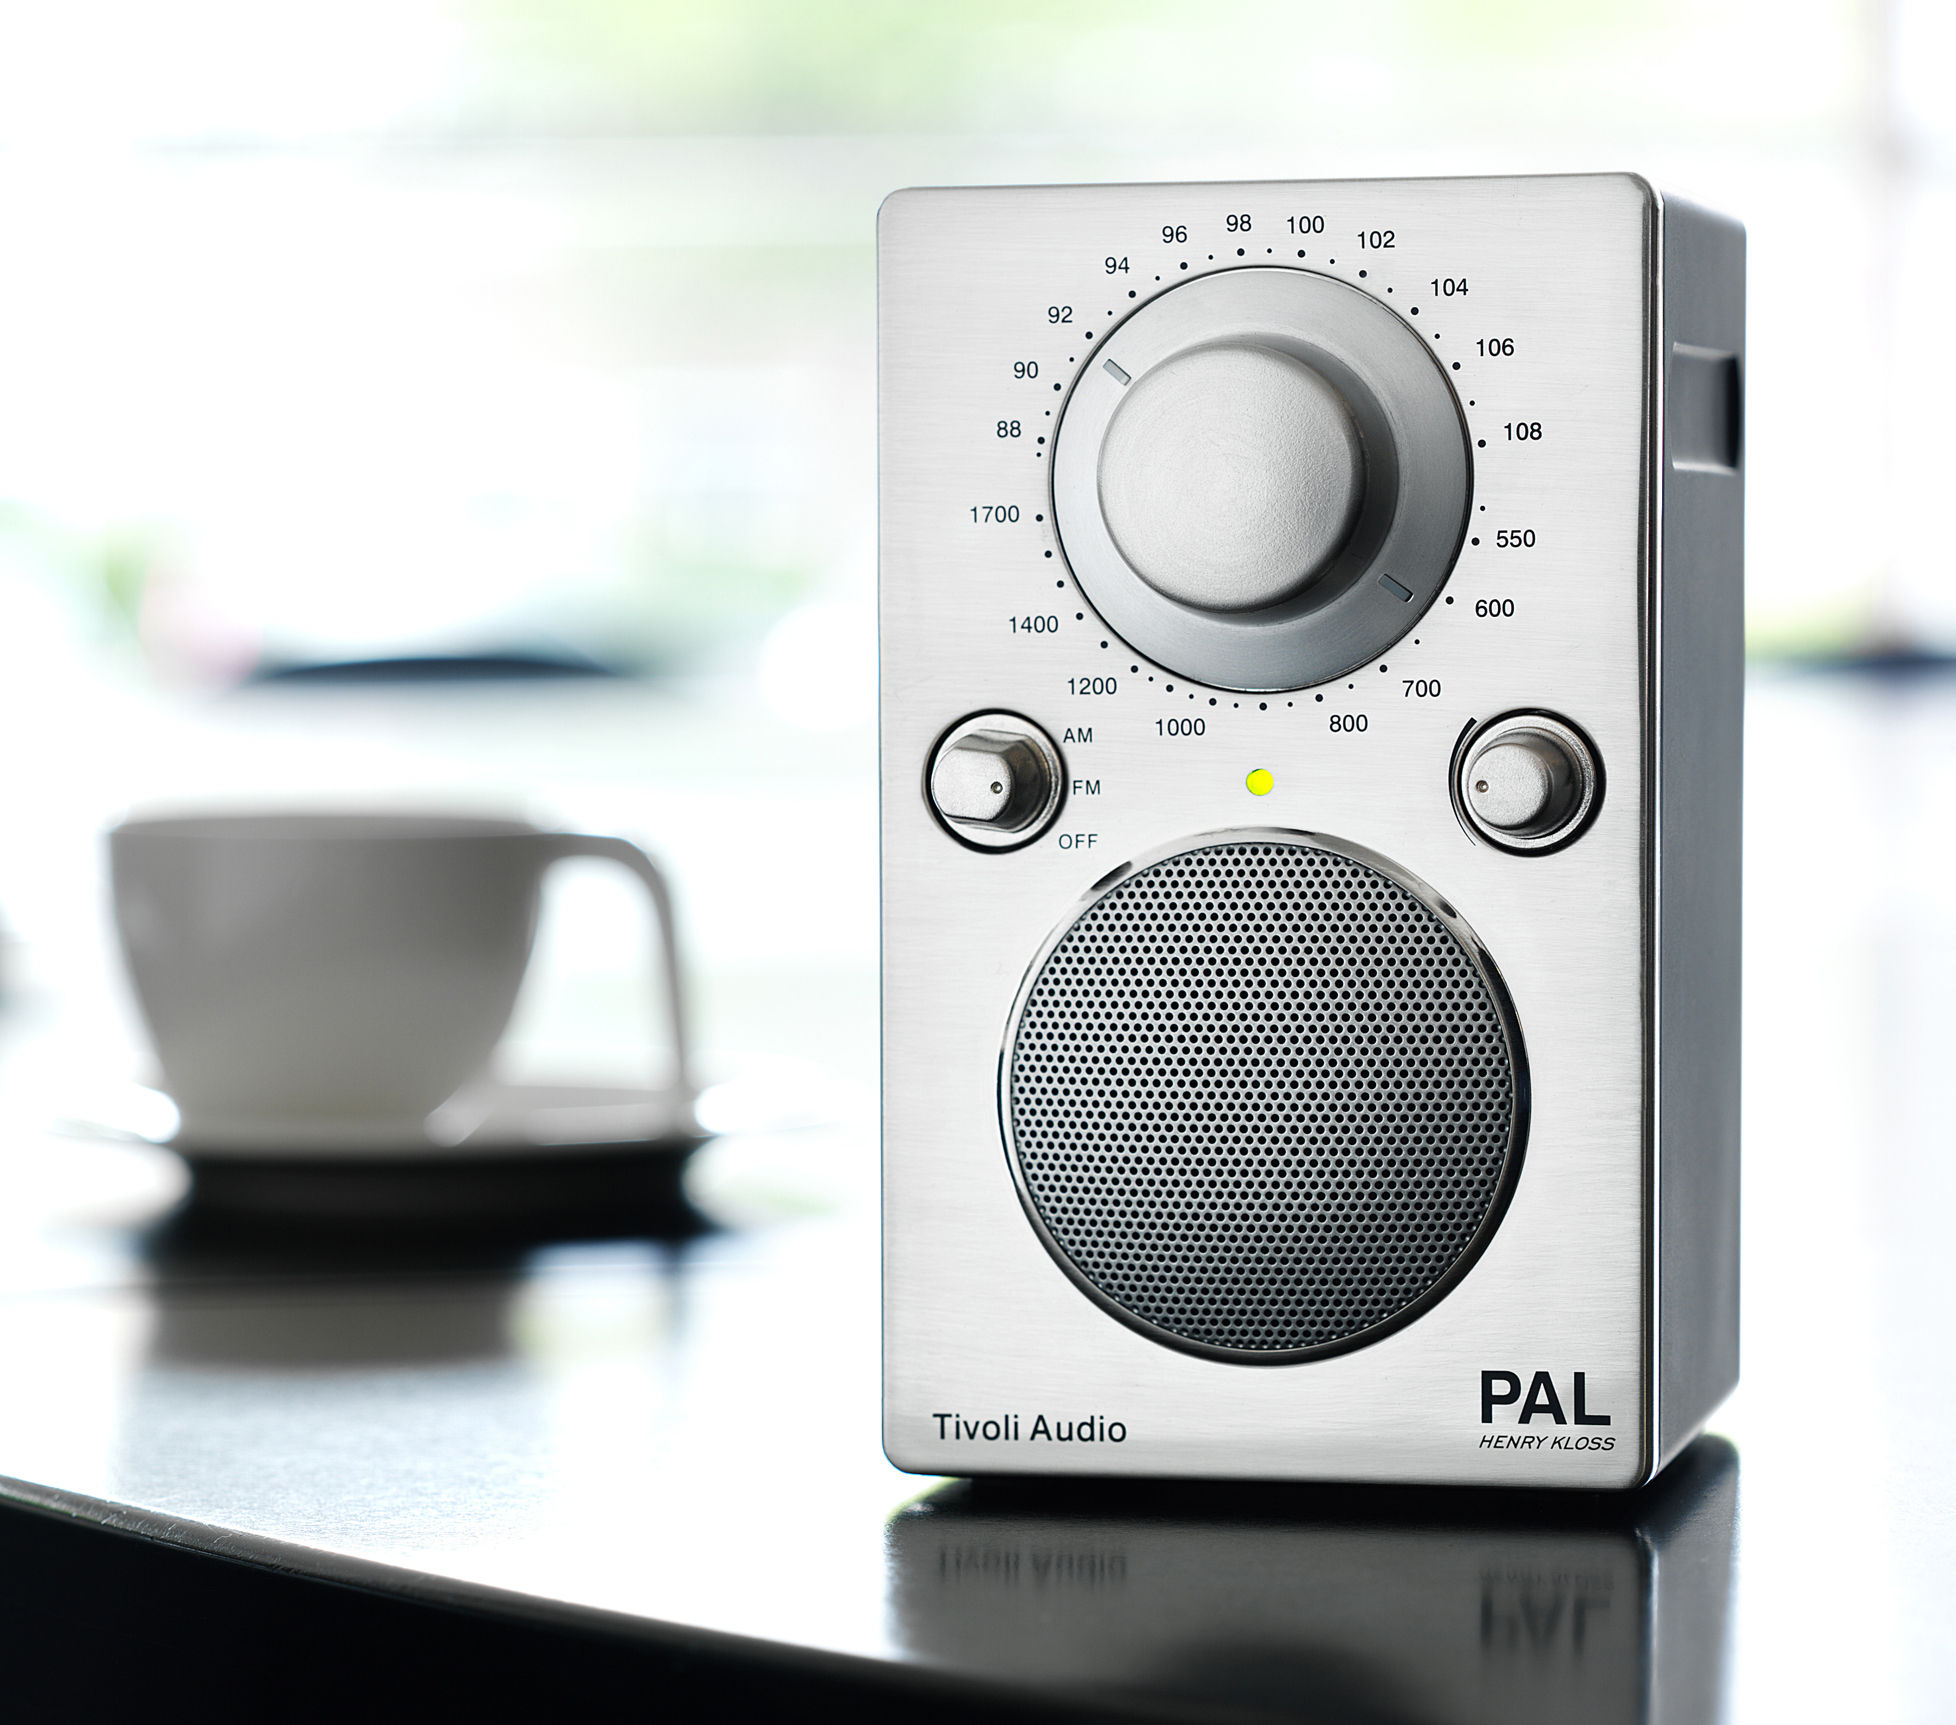 Tivoli Radio Pal Pal Edition Limitée Radio Portable Speaker Limited Edition By Tivoli Audio